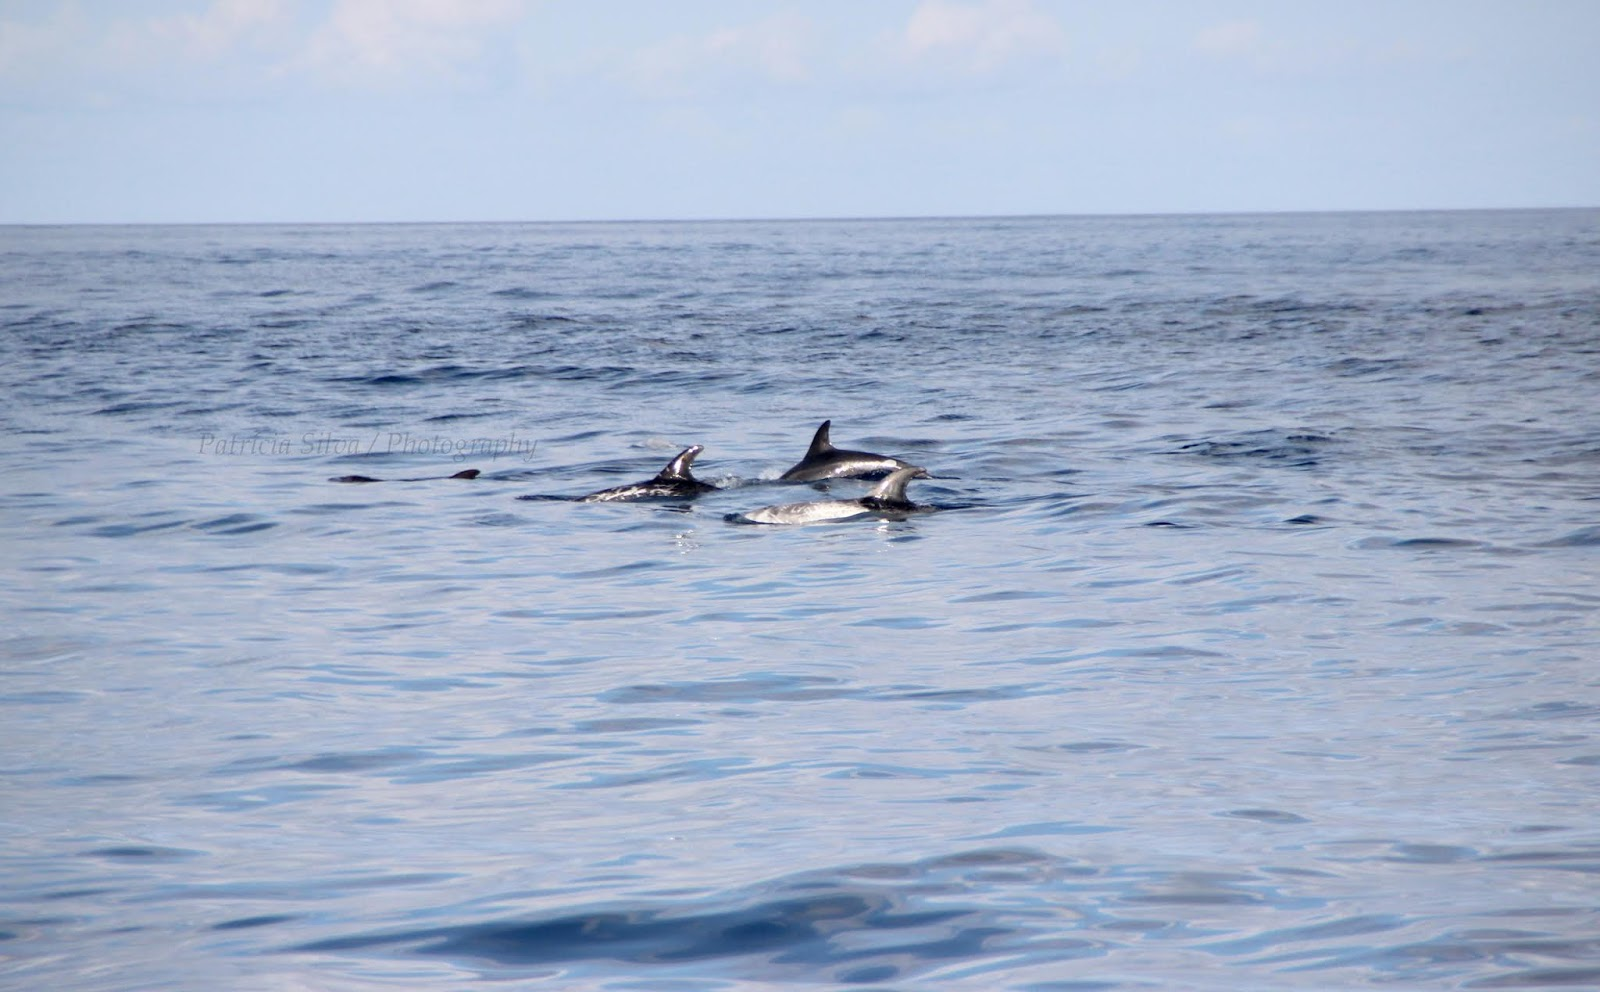 three dolphin together, they are in fewer groups